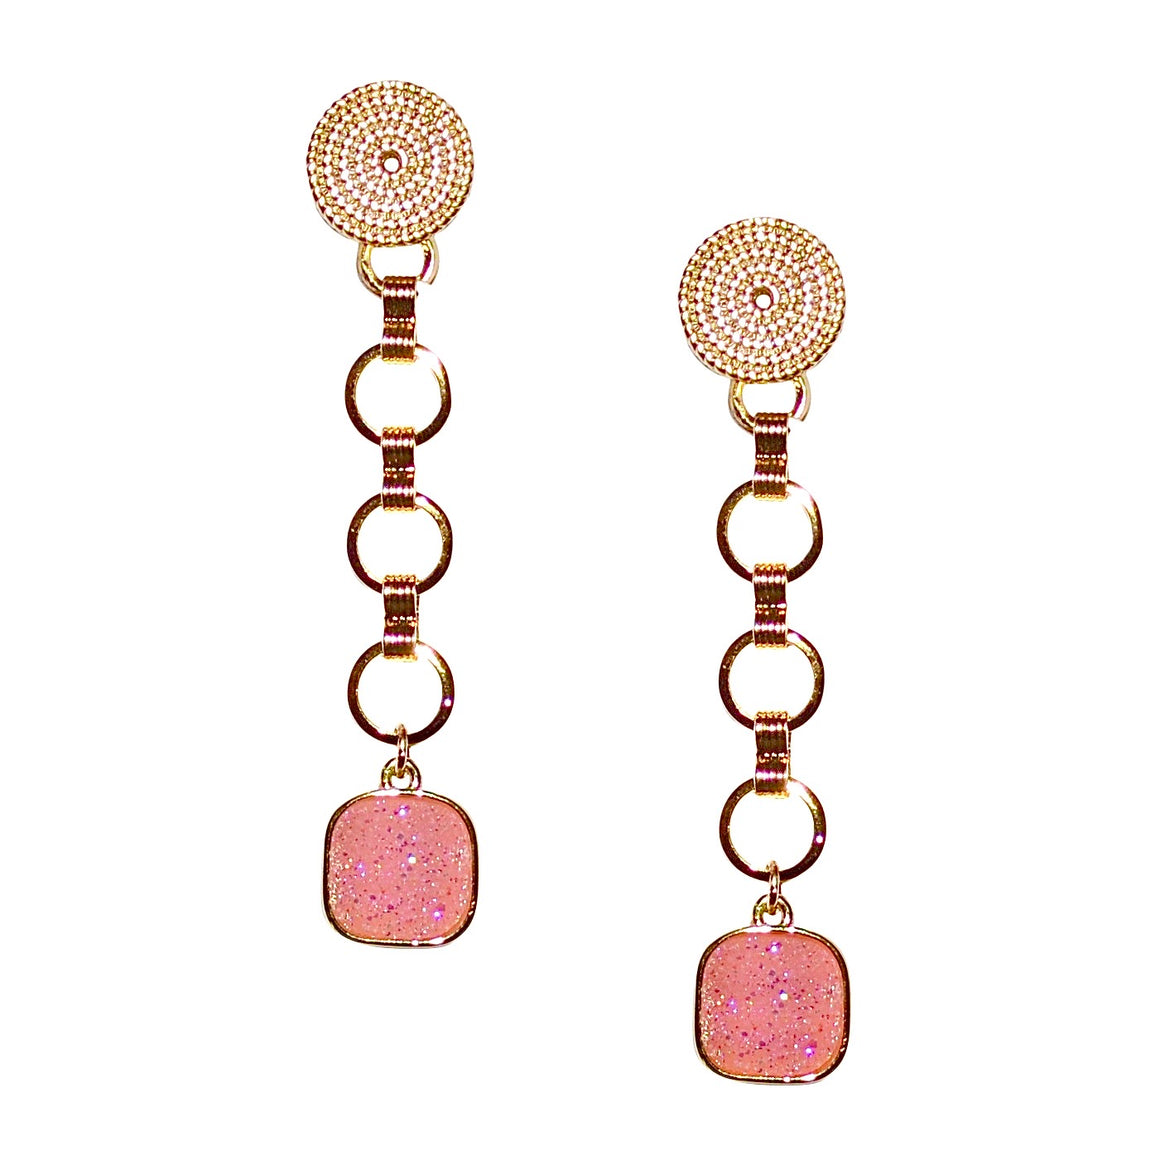 SERENA CHAIN DROP EARRING WITH PINK DRUZY